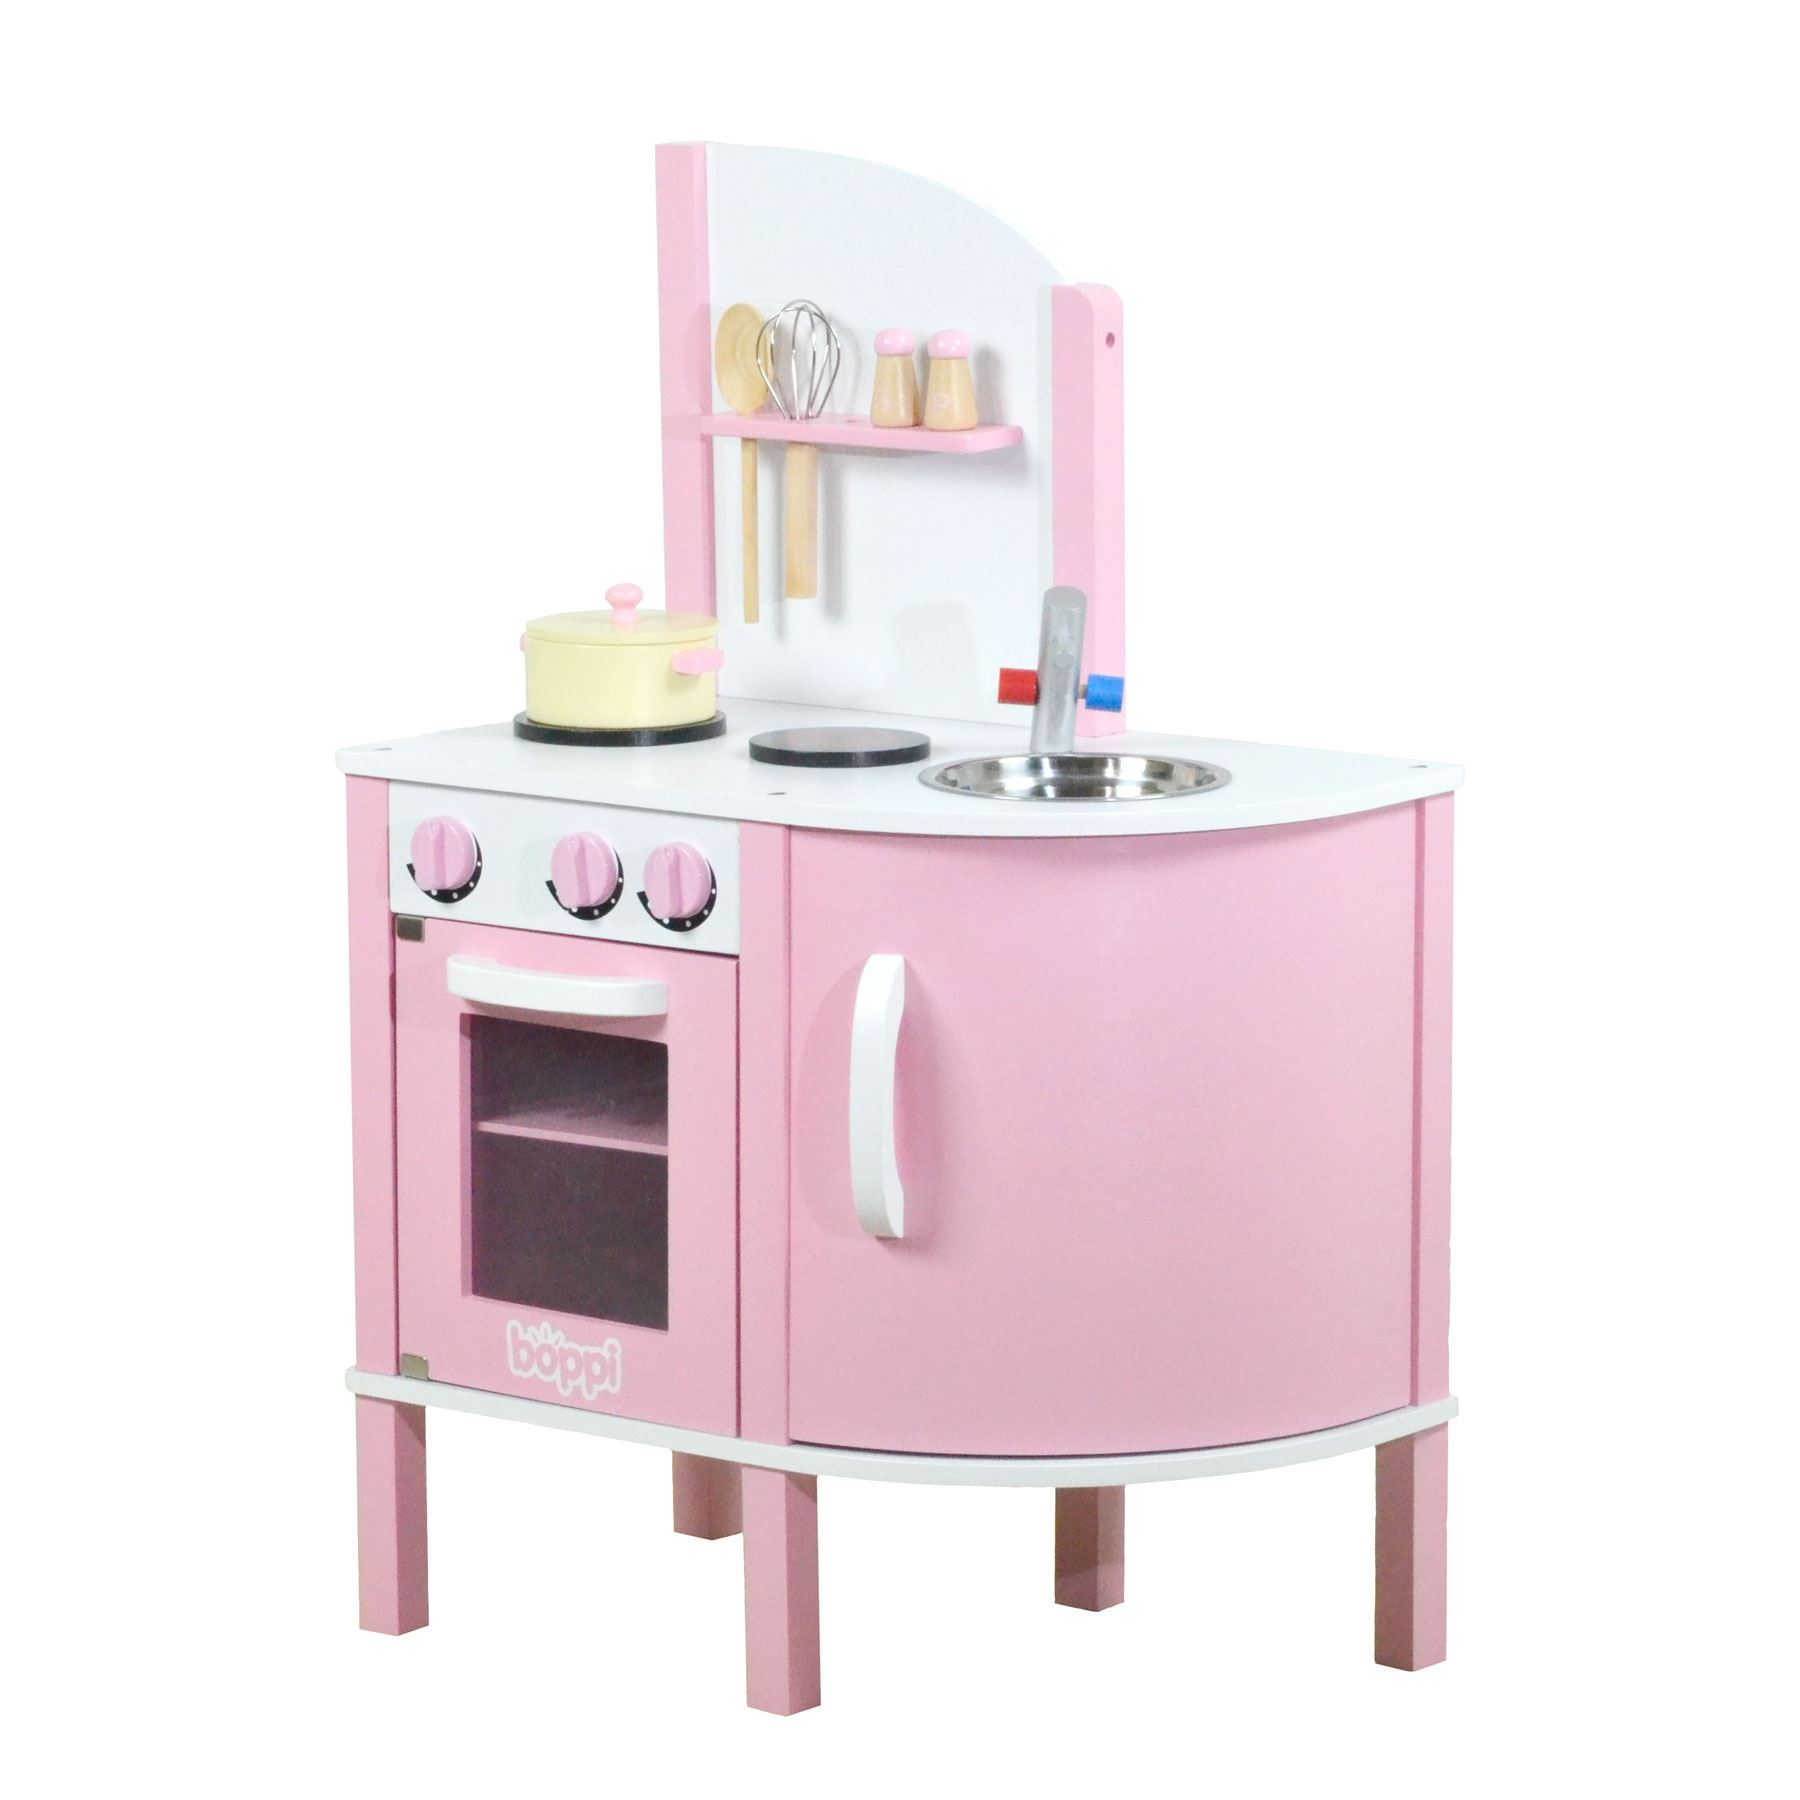 wooden kitchen accessory set childrens pink wooden kitchen with 5 1629